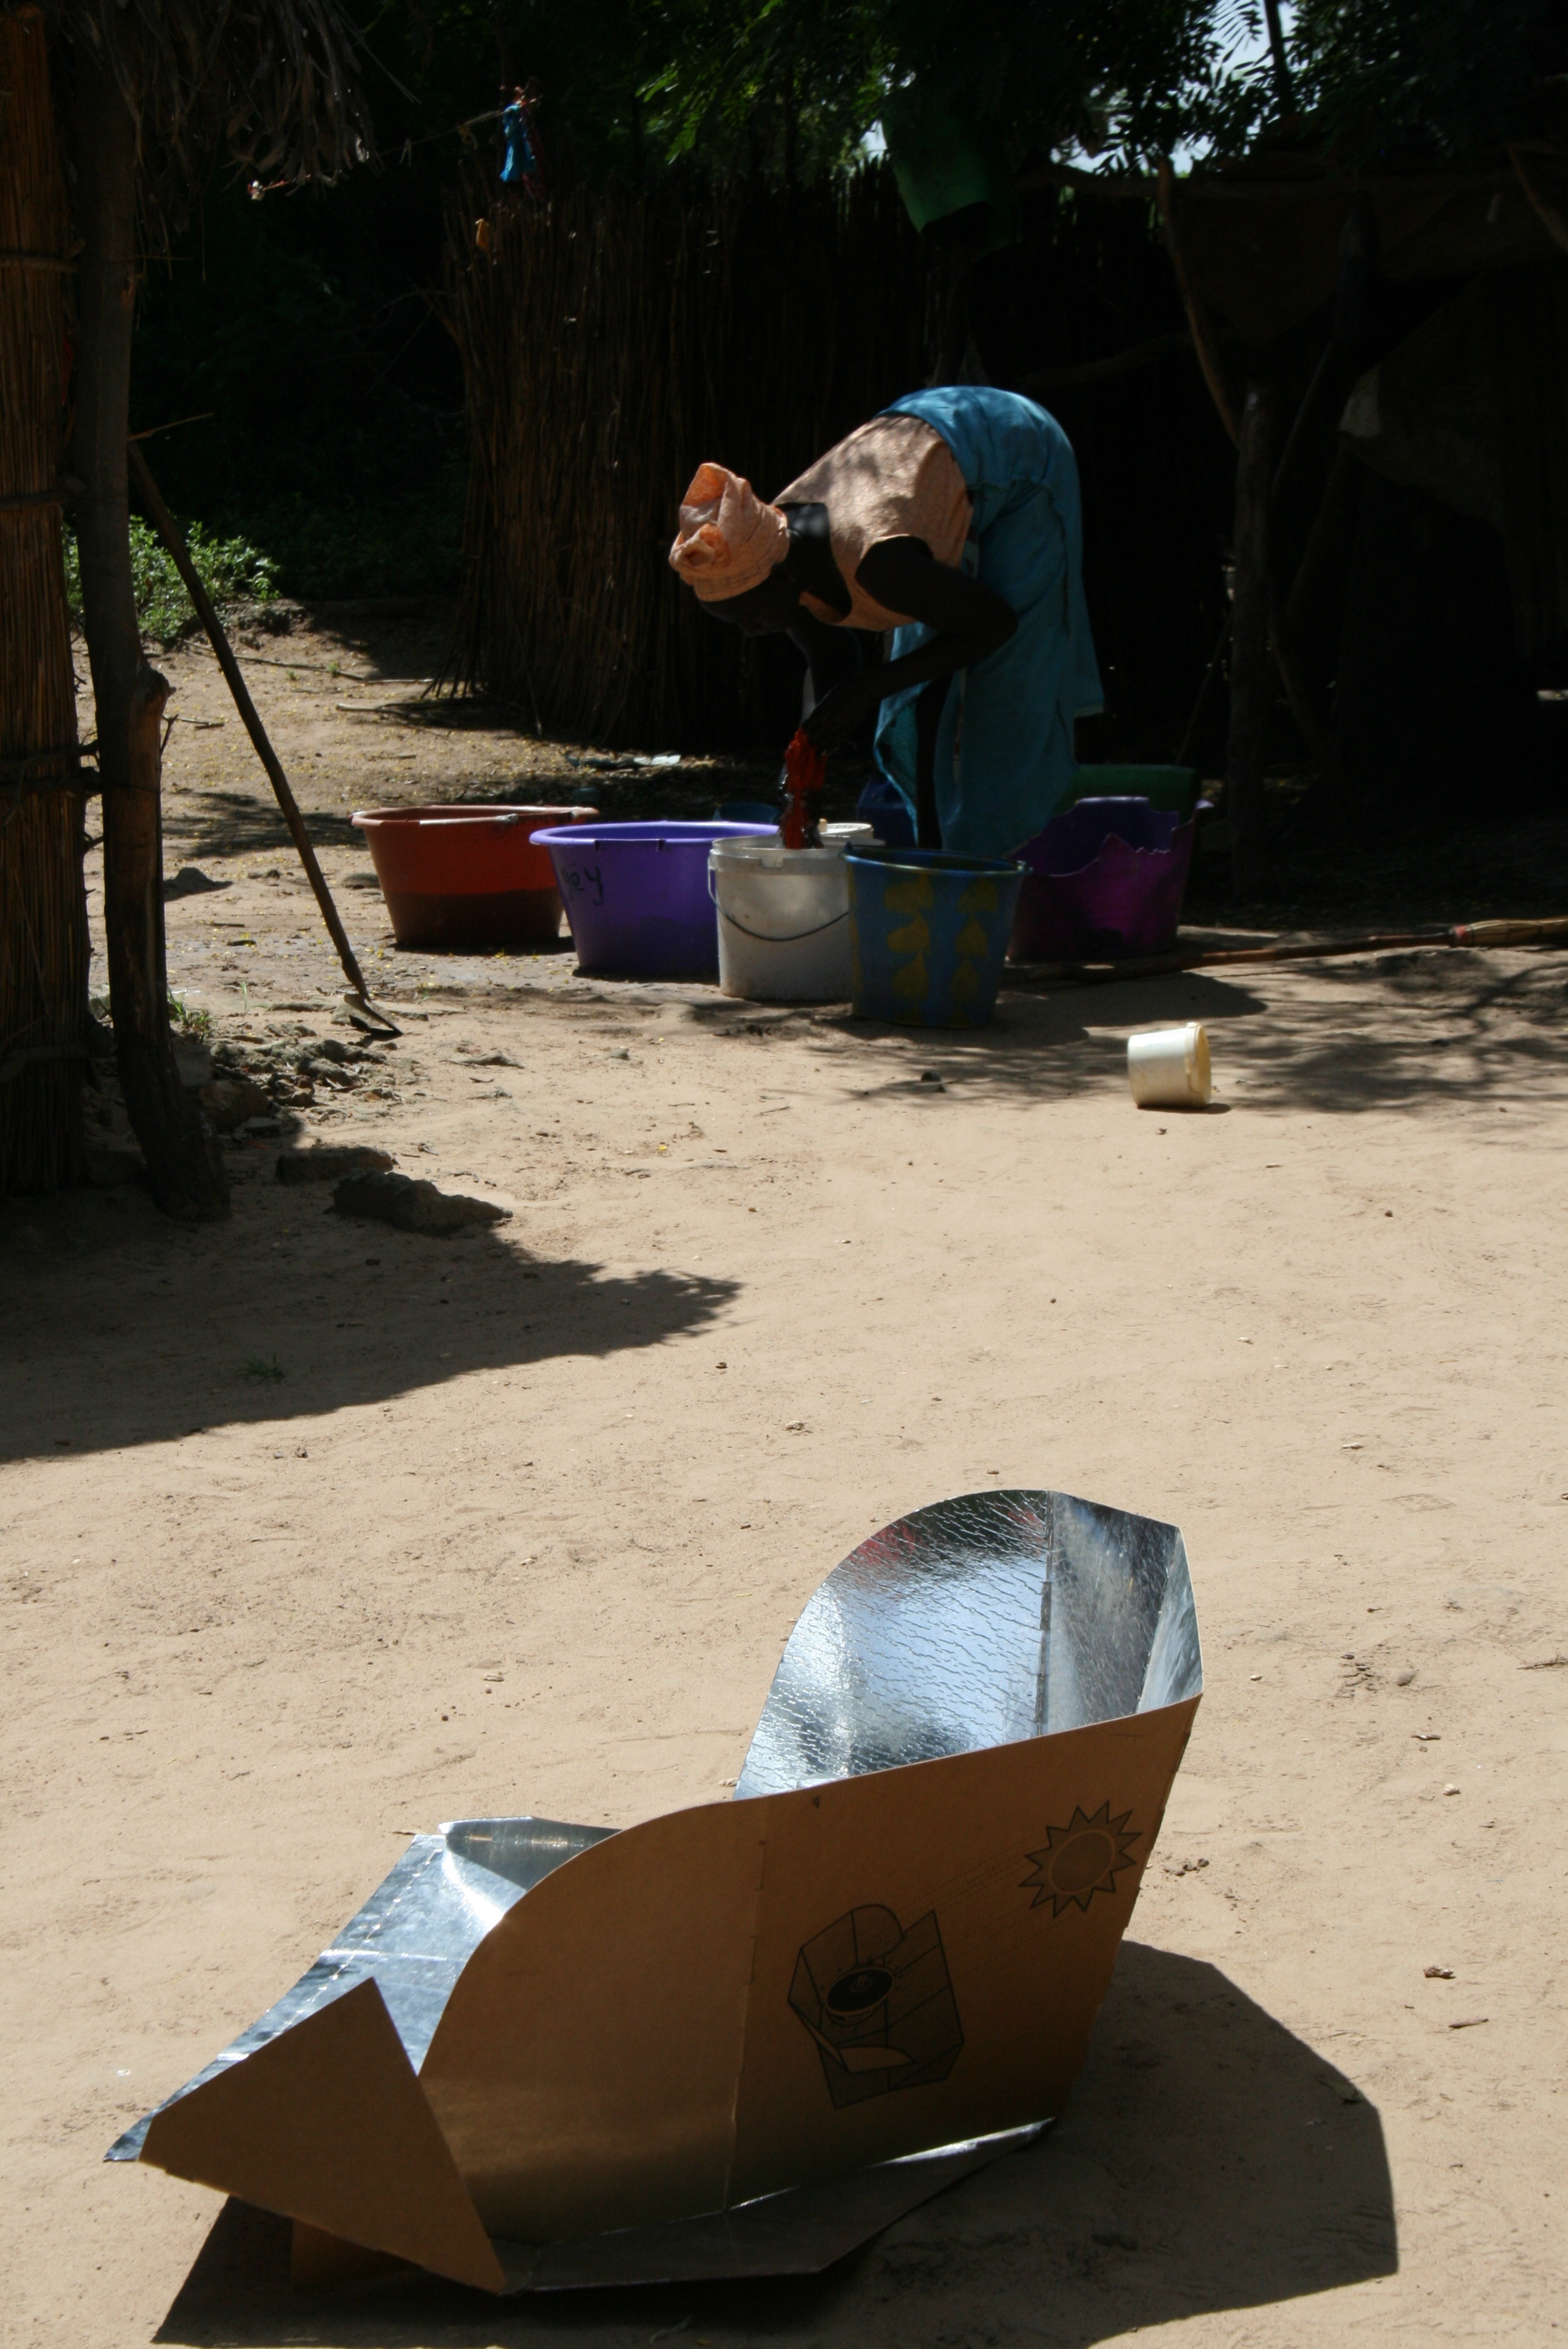 Solar stove use in rural Senegal allows women more time for other activities. A study is evaluating the health and environmental benefits of switching to cleaner energy, October 2008